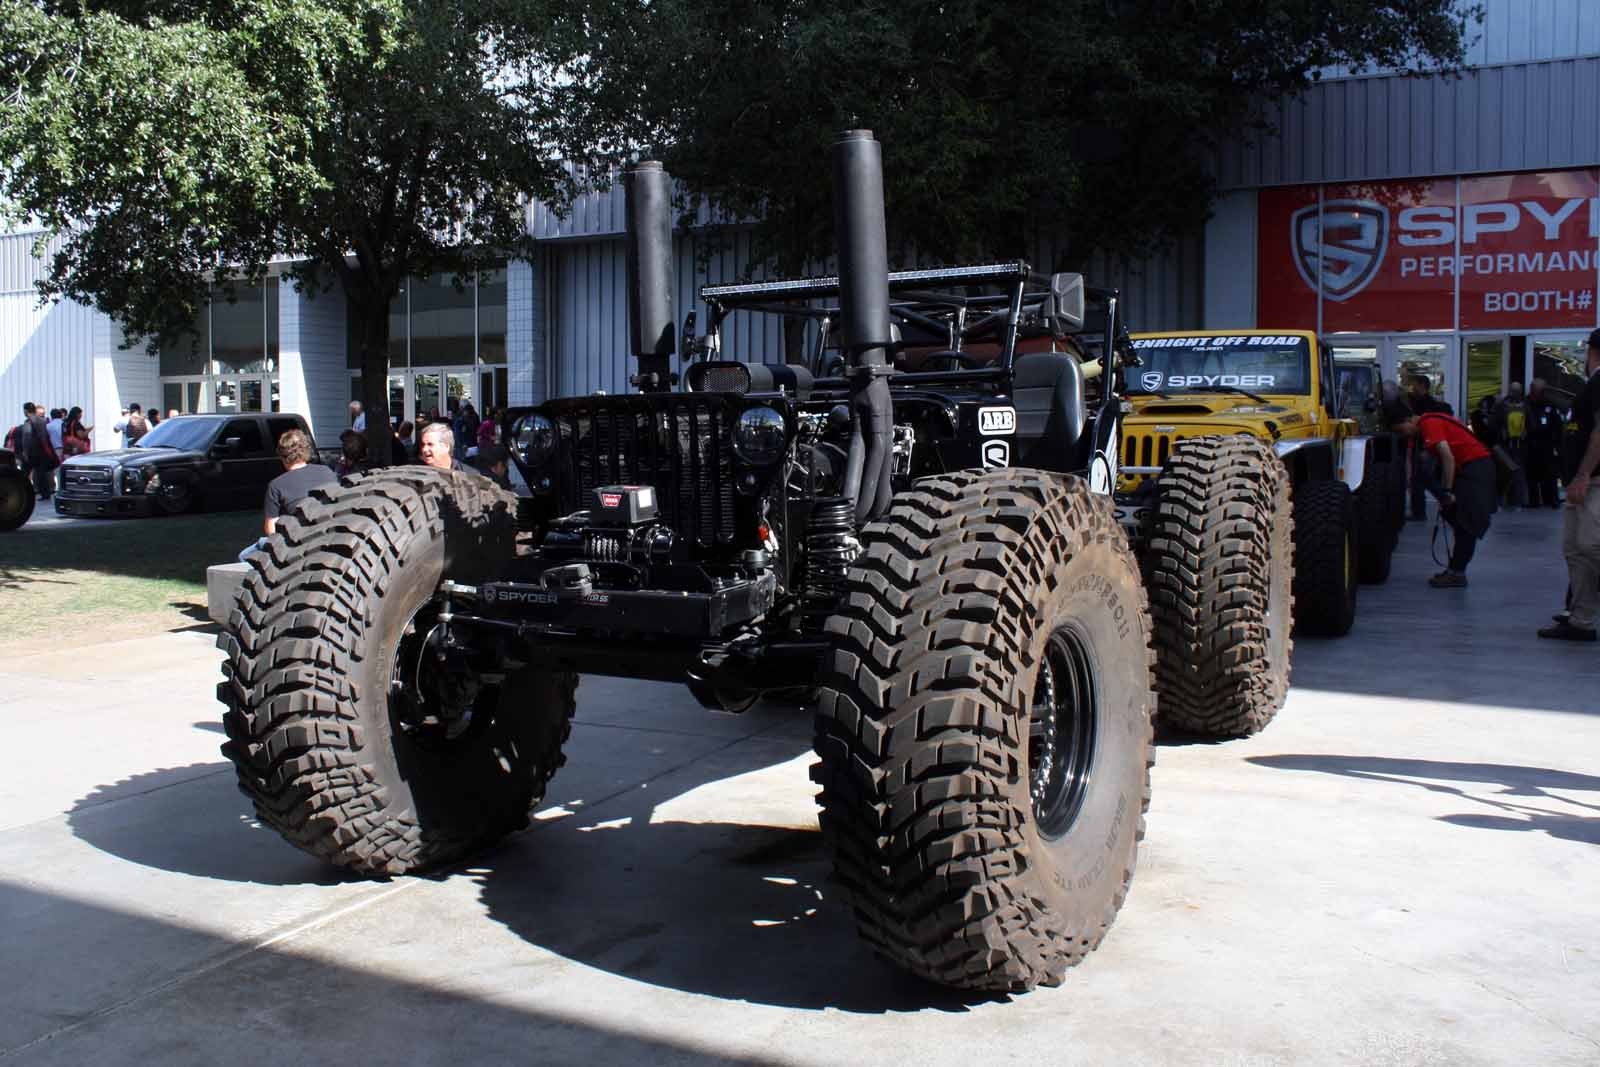 Custom Used Jeeps For Sale >> Gallery: 15 Badass Jeeps from SEMA You Know You Want » AutoGuide.com News